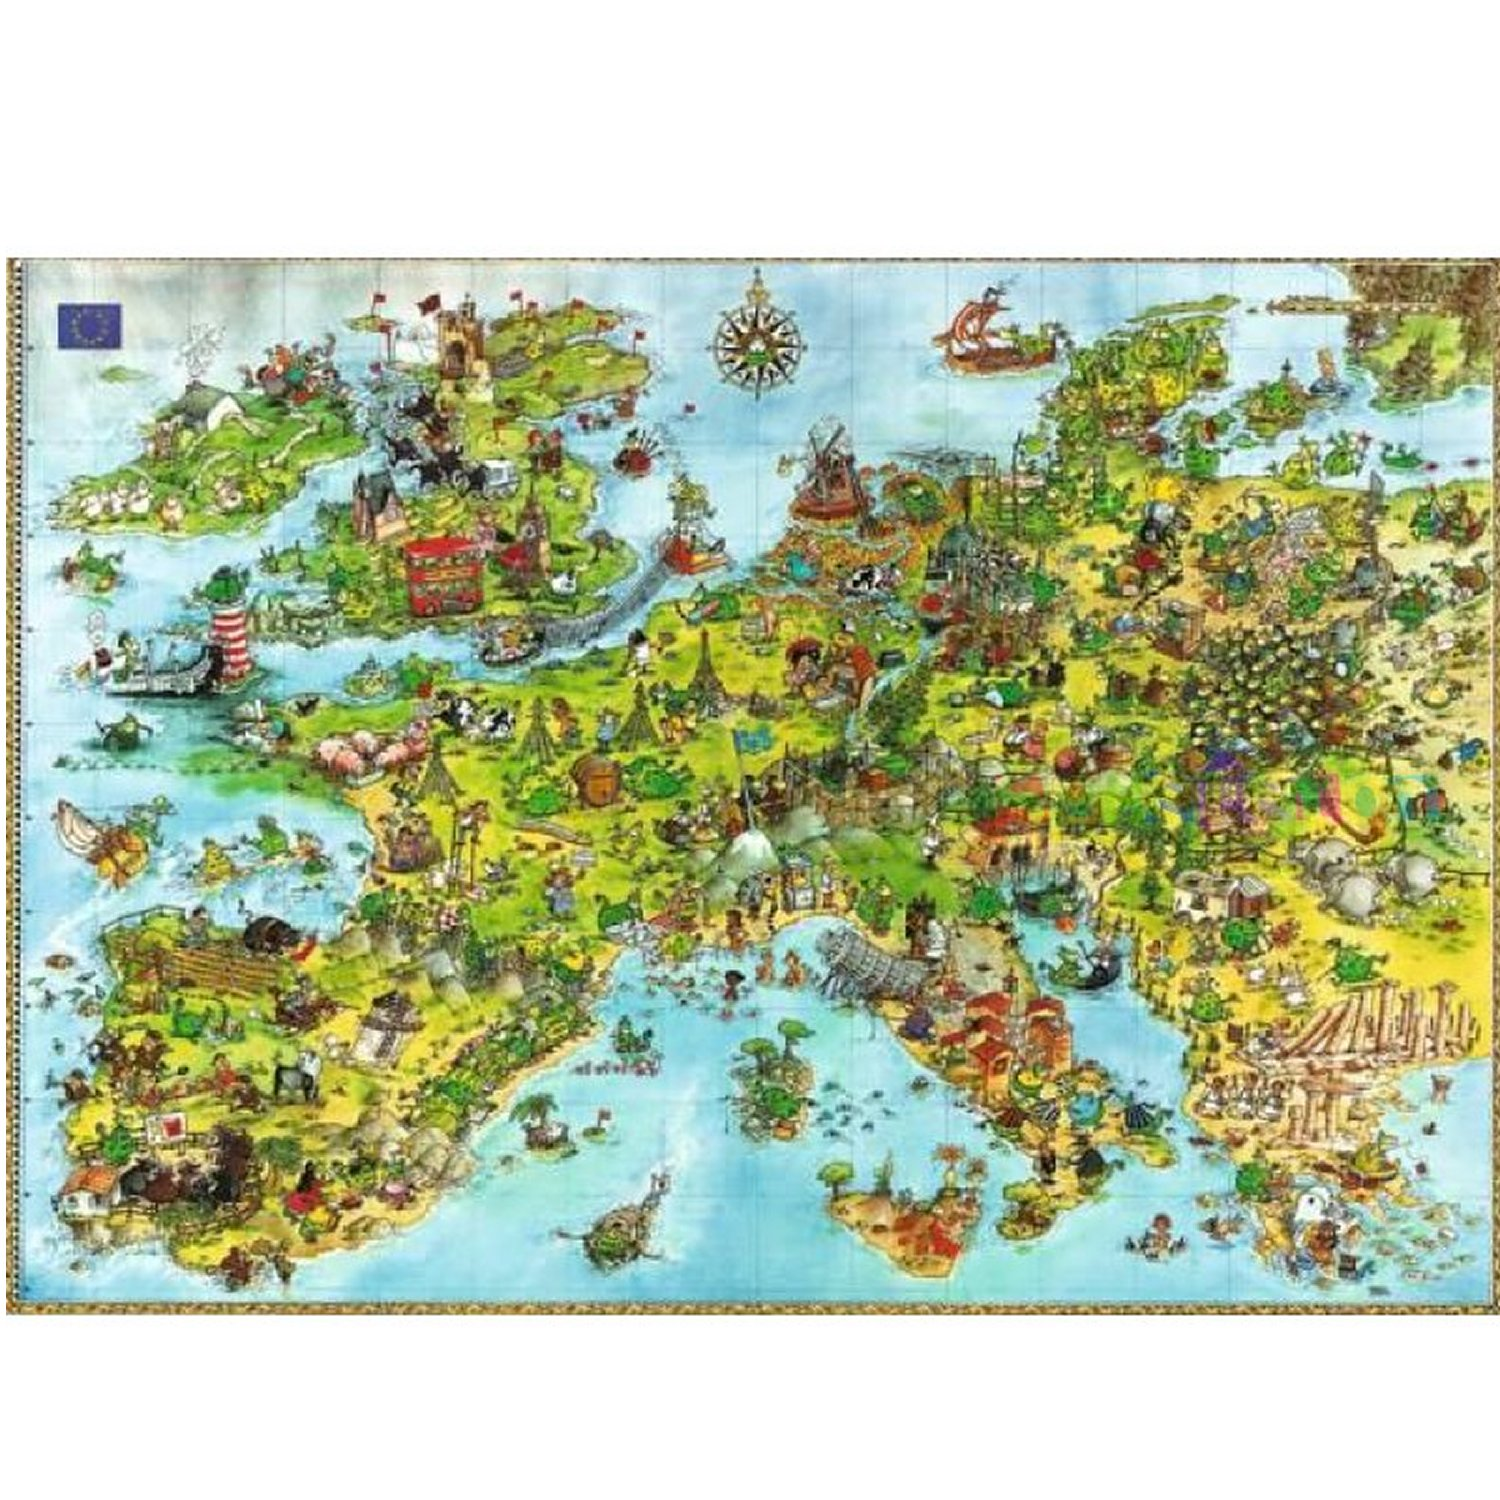 jigsaw puzzle 4000 pieces degano europe heye 08854 4000 pieces jigsaw puzzles world maps. Black Bedroom Furniture Sets. Home Design Ideas